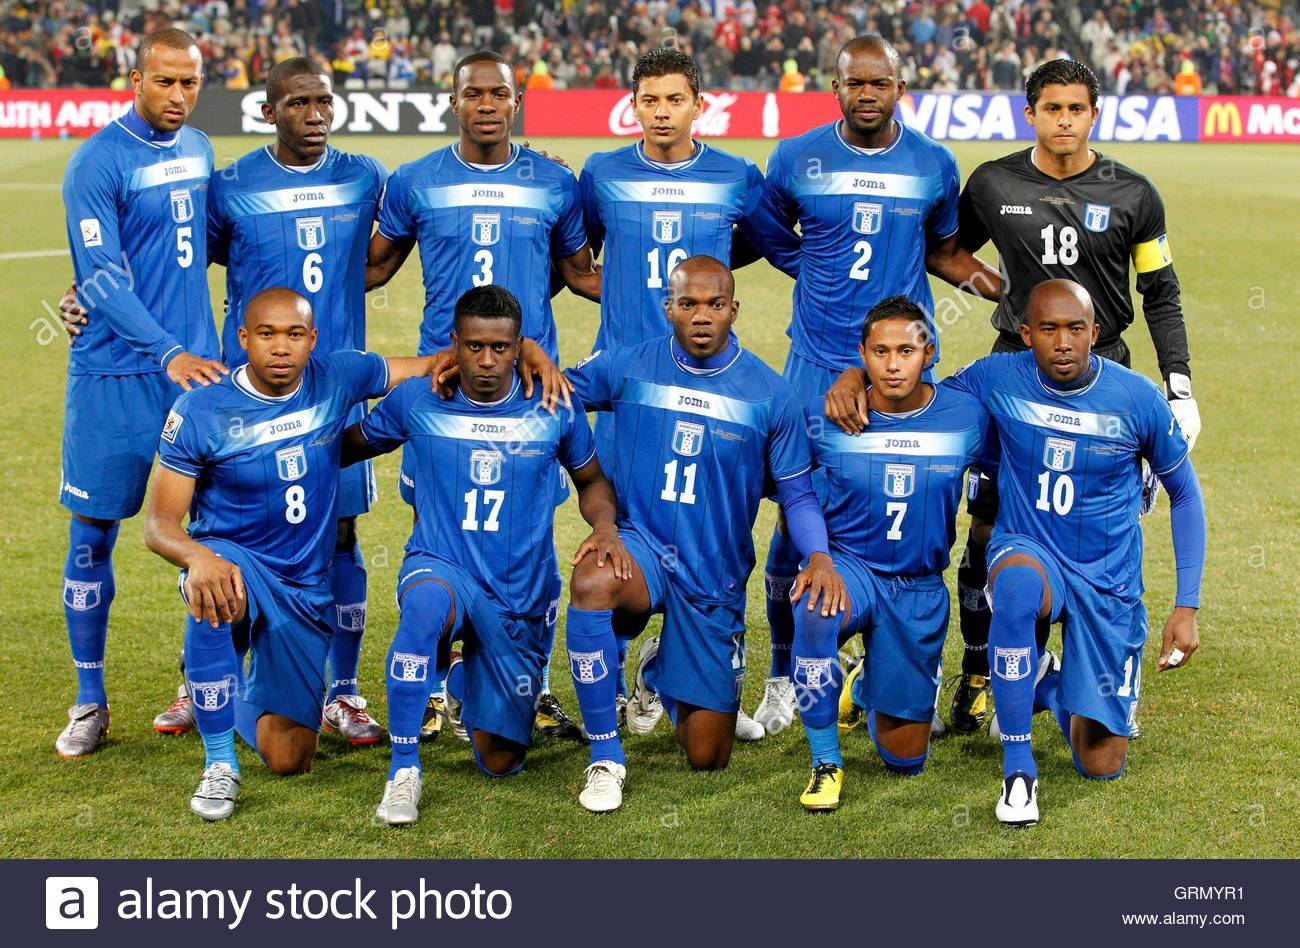 mauricio sabillon stock photos mauricio sabillon stock images players line up for a team photo before the 2010 world cup group h